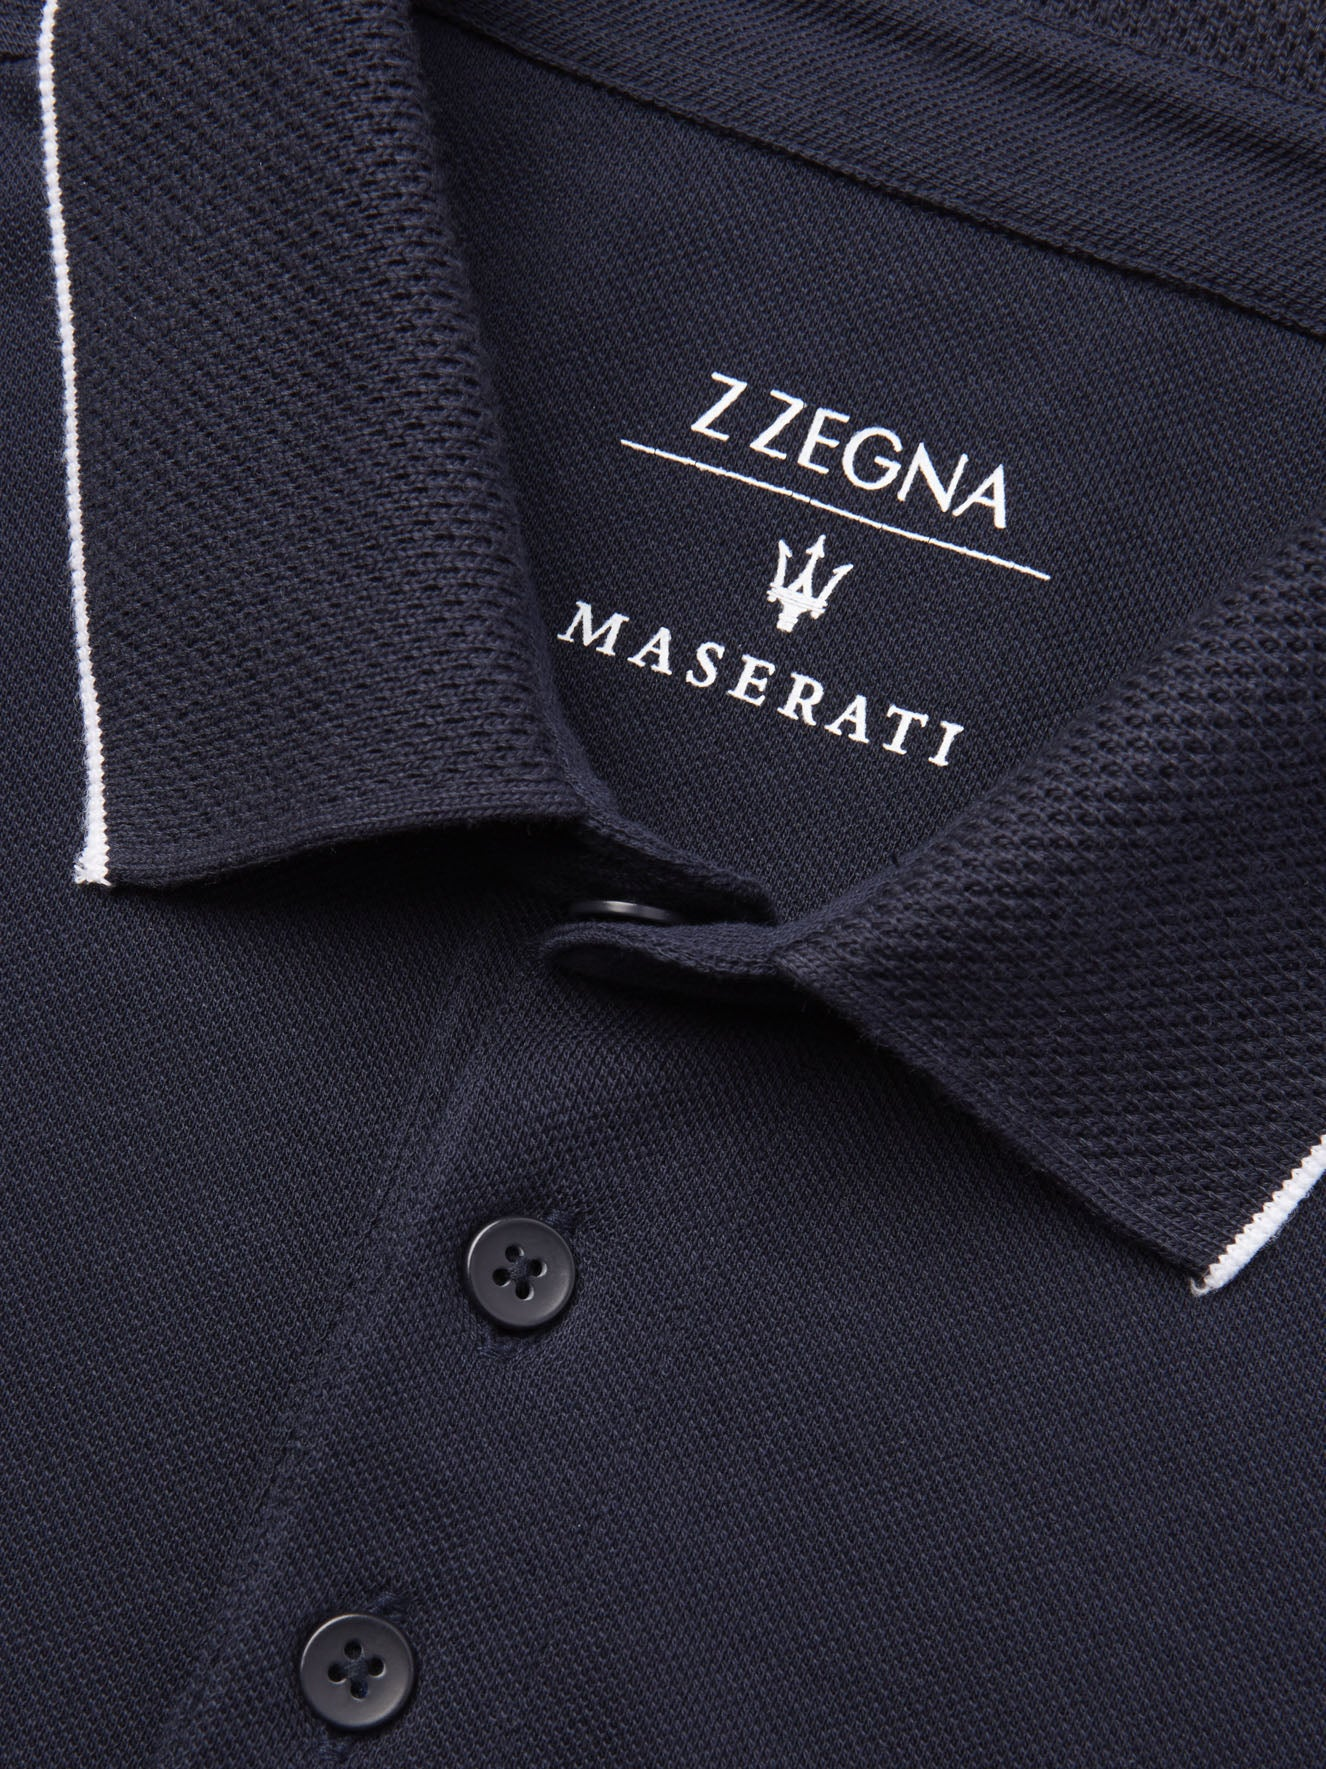 ZZegna Summer T-shirt Collection